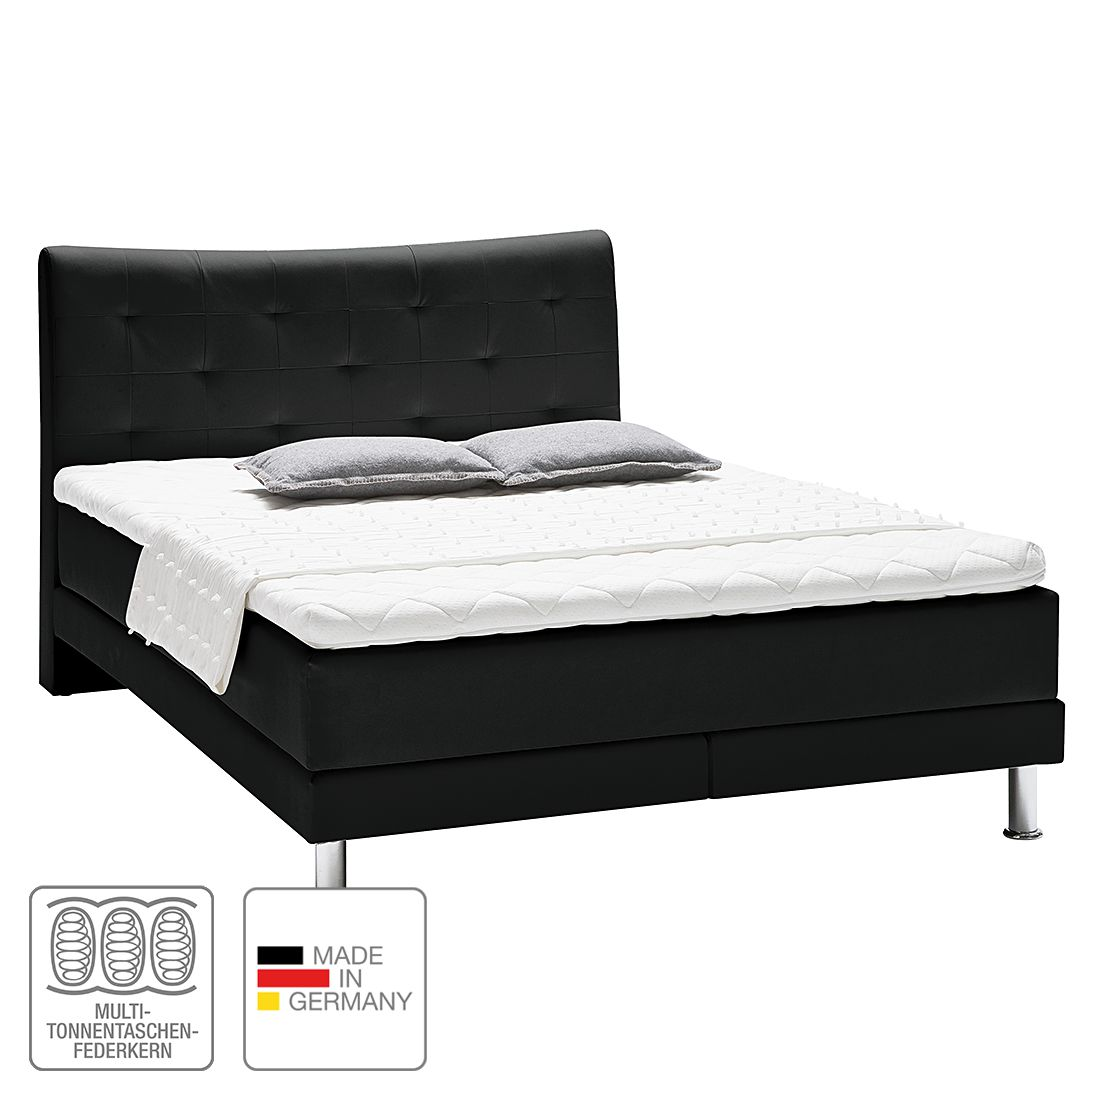 boxspringbett vega kunstleder 140 x 200cm h2 bis 80 kg kaltschaumtopper multi. Black Bedroom Furniture Sets. Home Design Ideas